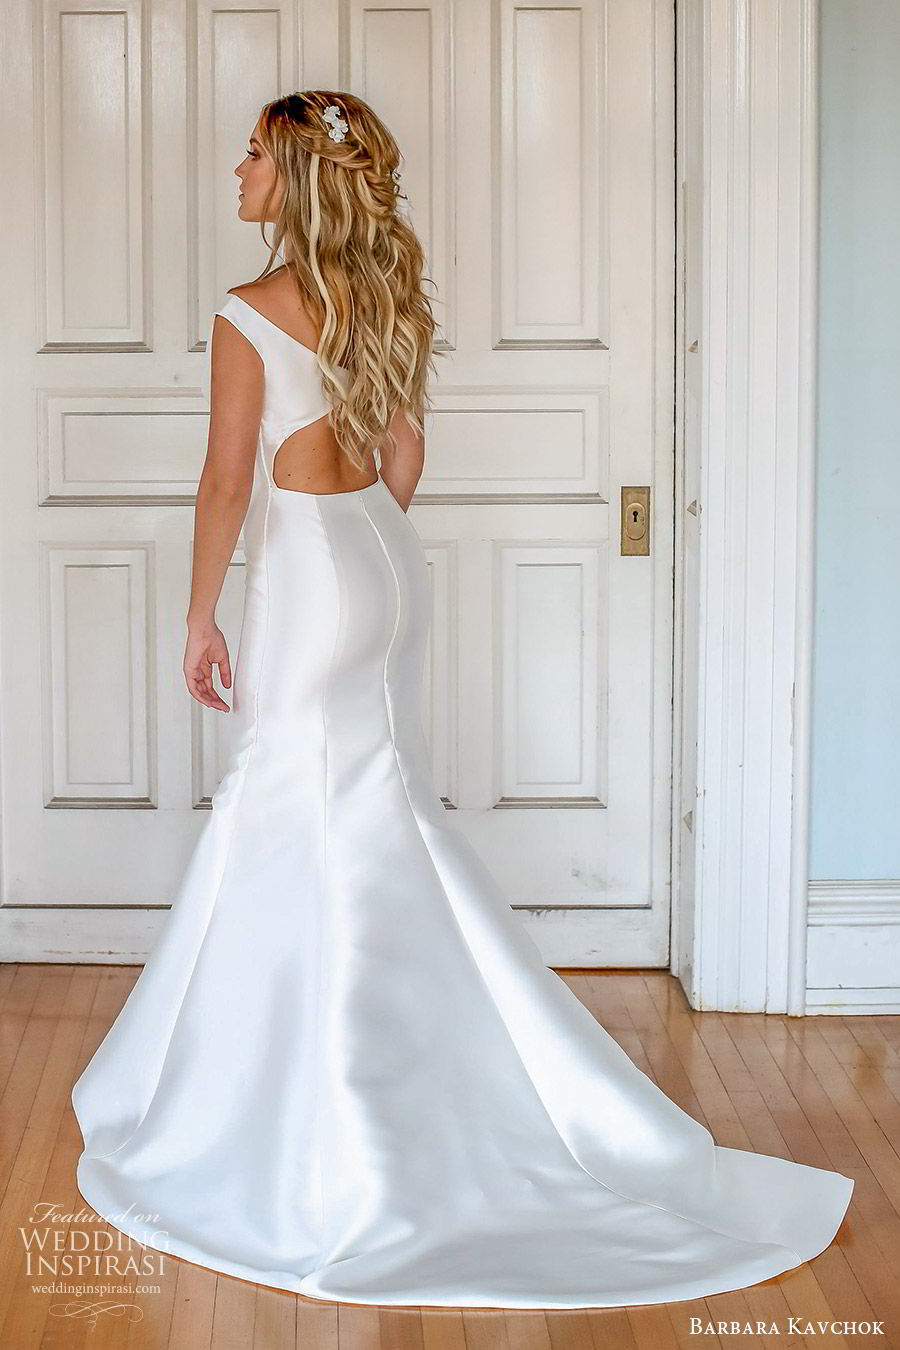 barbara kavchok fall 2019 bridal off shoulder cap sleeves scoop neck illusion cutout fit flare wedding dress (5) bv cutout back chapel train classic minimal clean